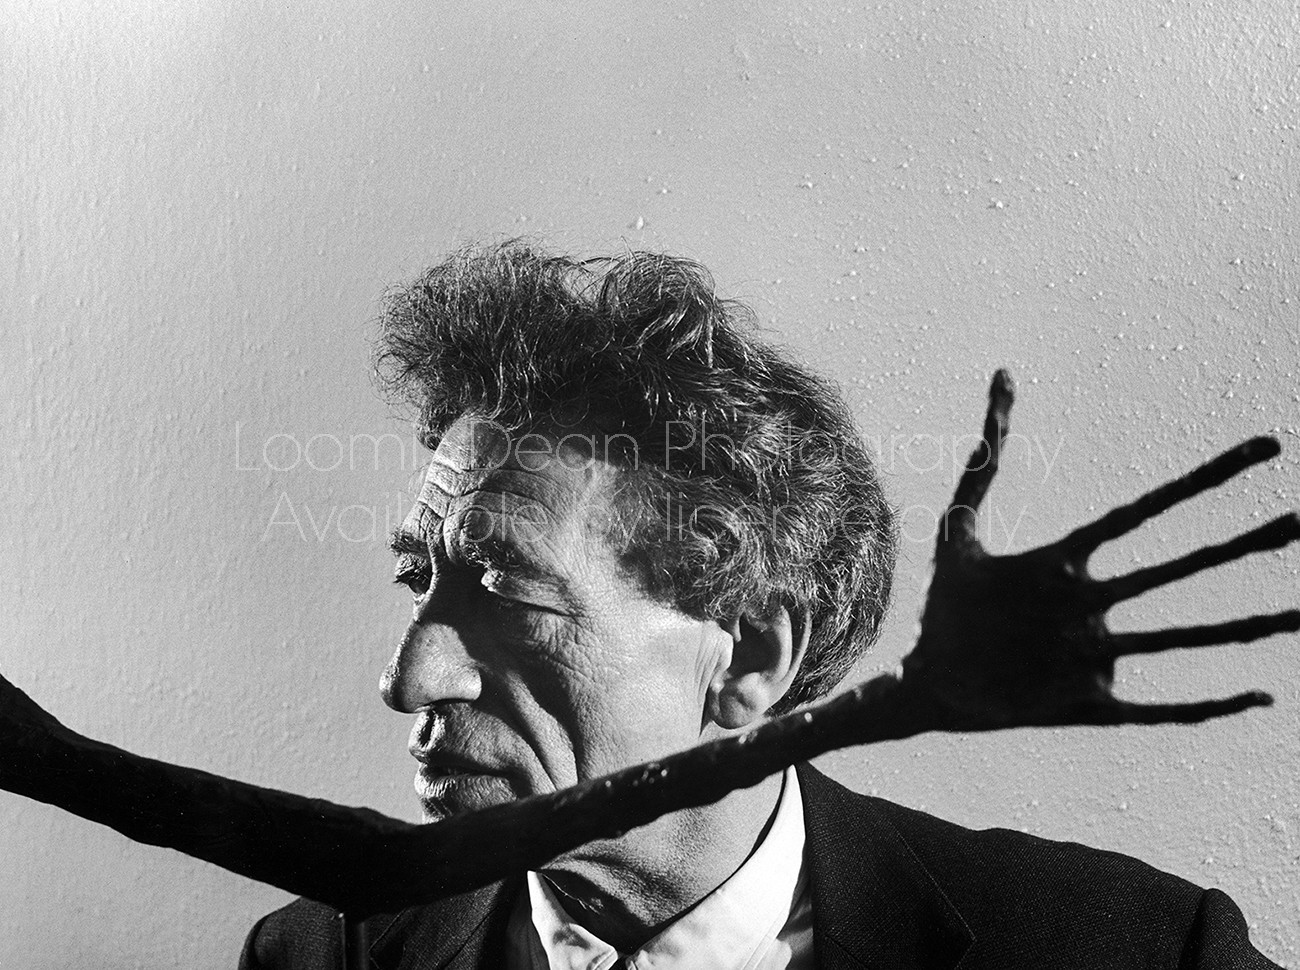 Portrait of sculptor Alberto Giacometti framed by reaching hand of one of his sculptures on display in museum.